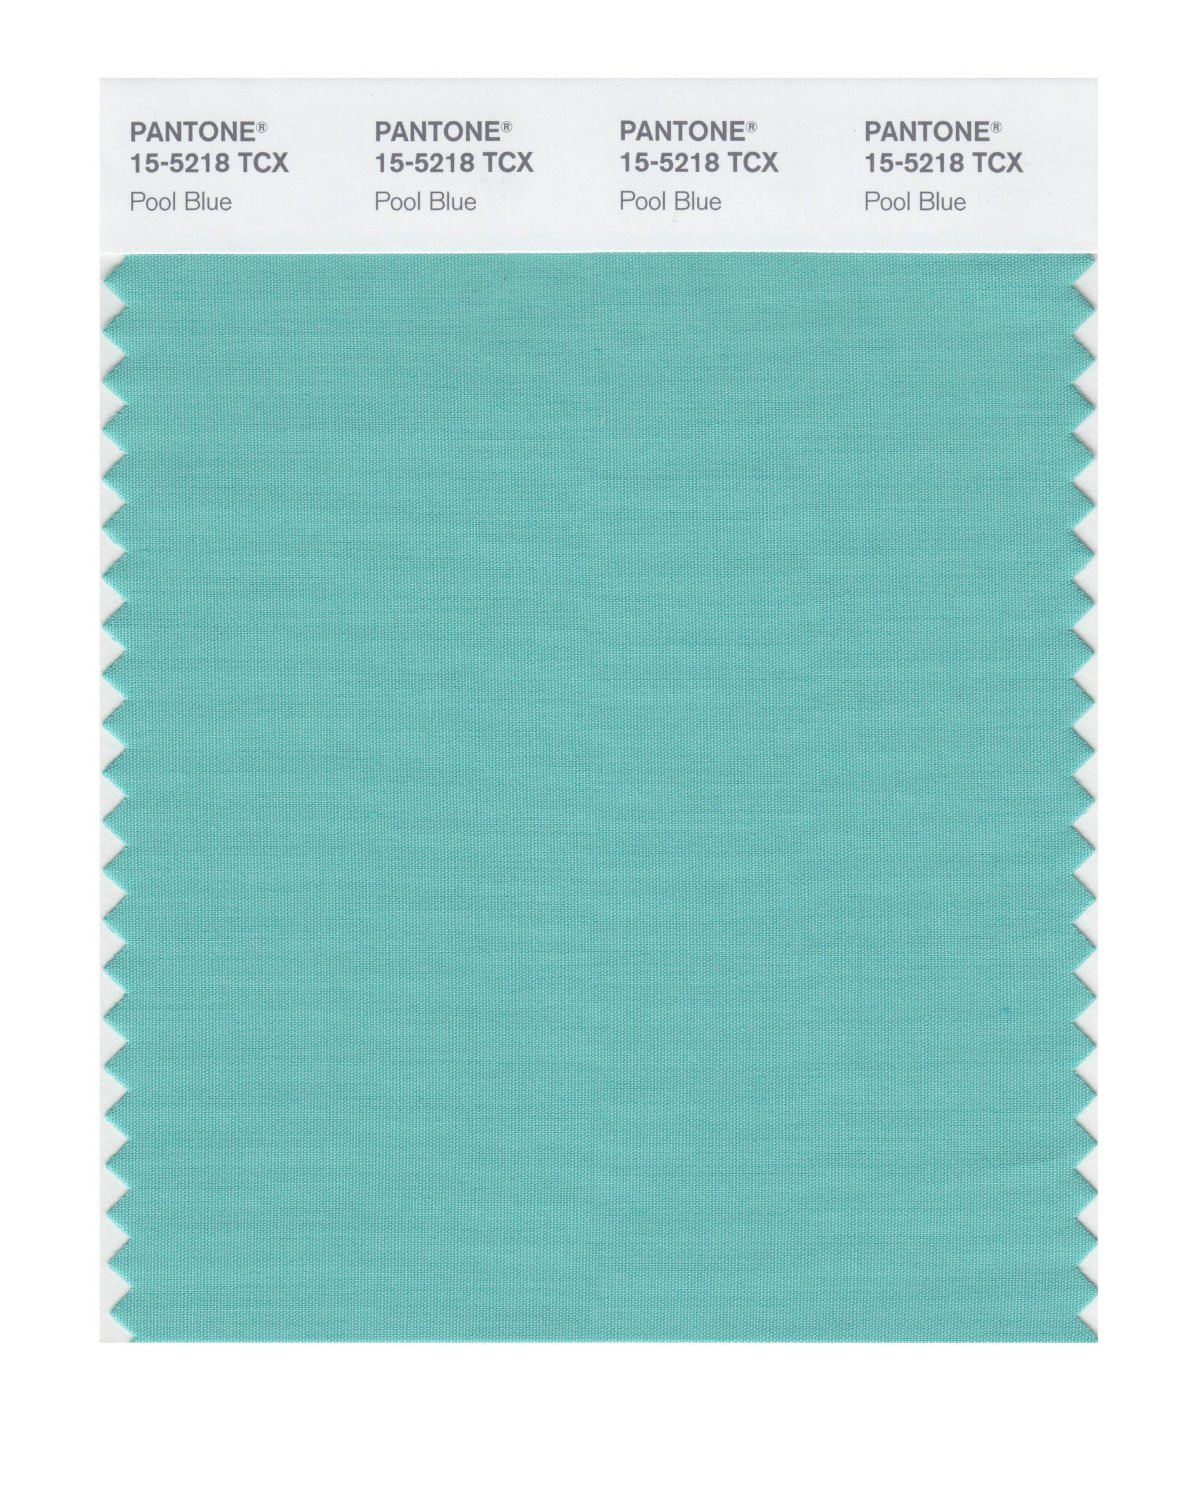 Pantone Smart Swatch 15-5218 Pool Blue